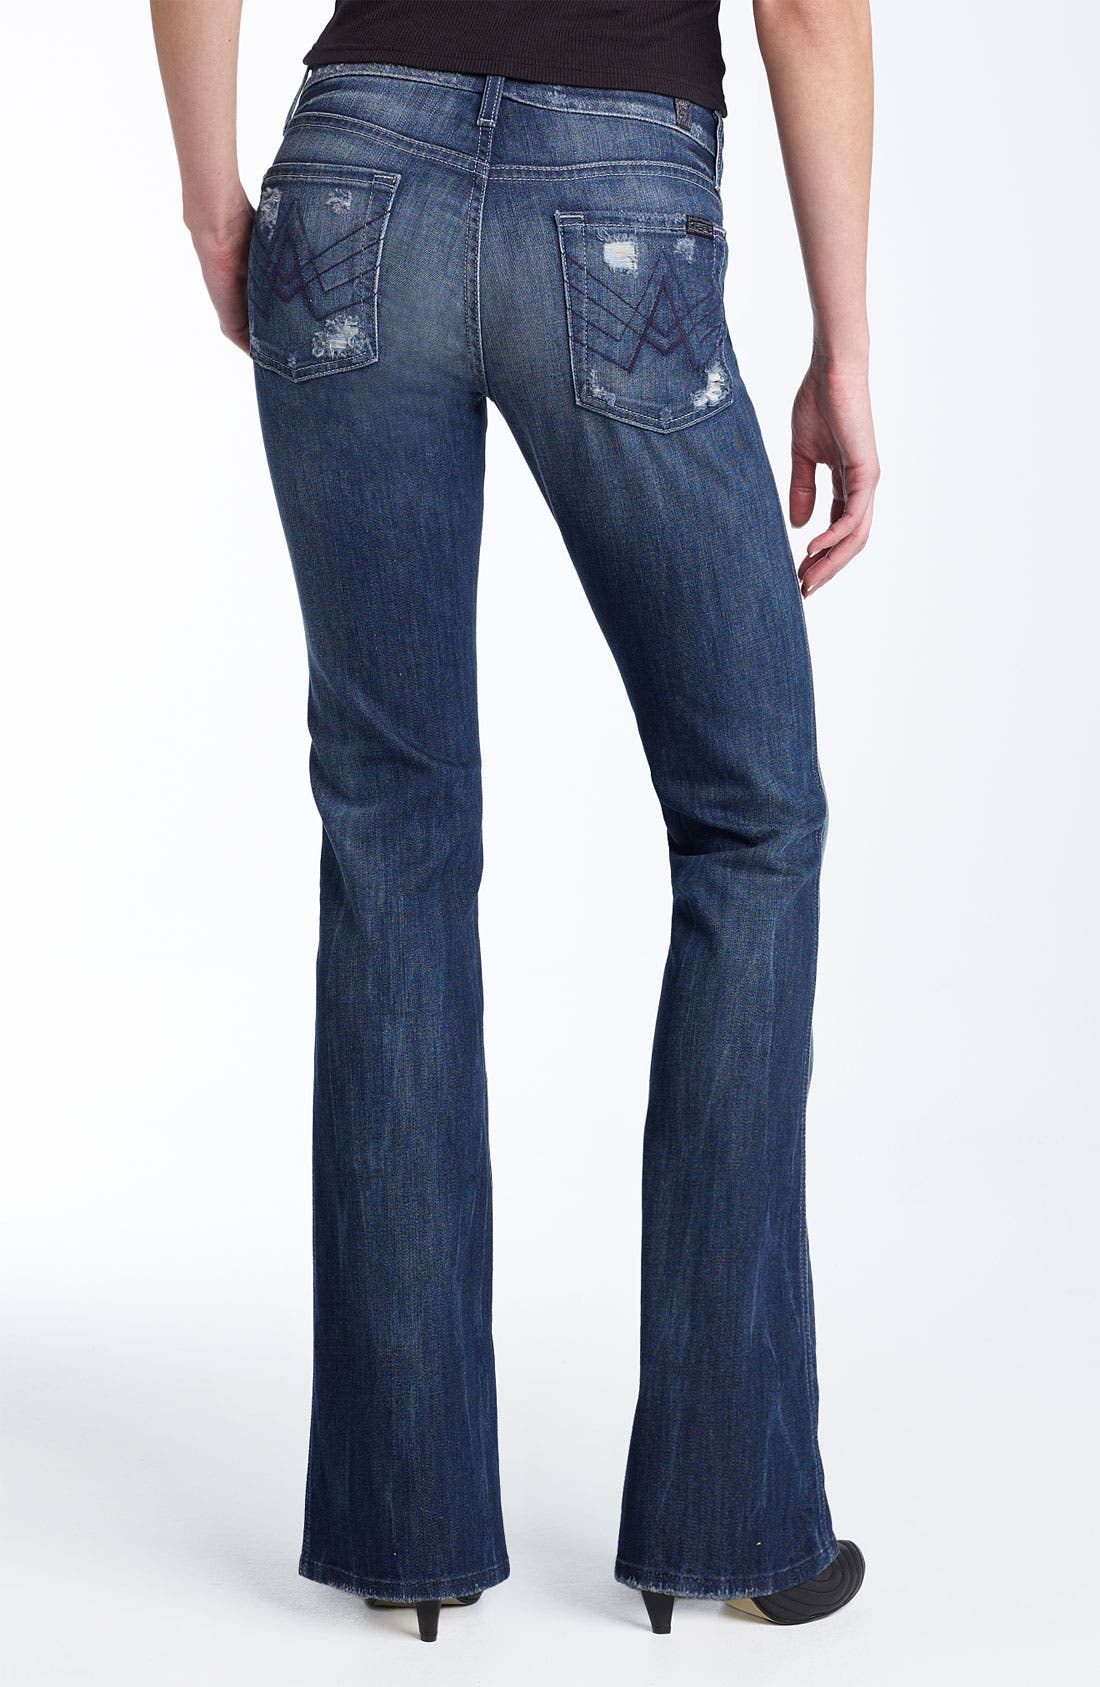 Alternate Image 1 Selected - 7 For All Mankind® 'A-Pocket' Stretch Jeans (Destroyed Beverly Glen Wash)